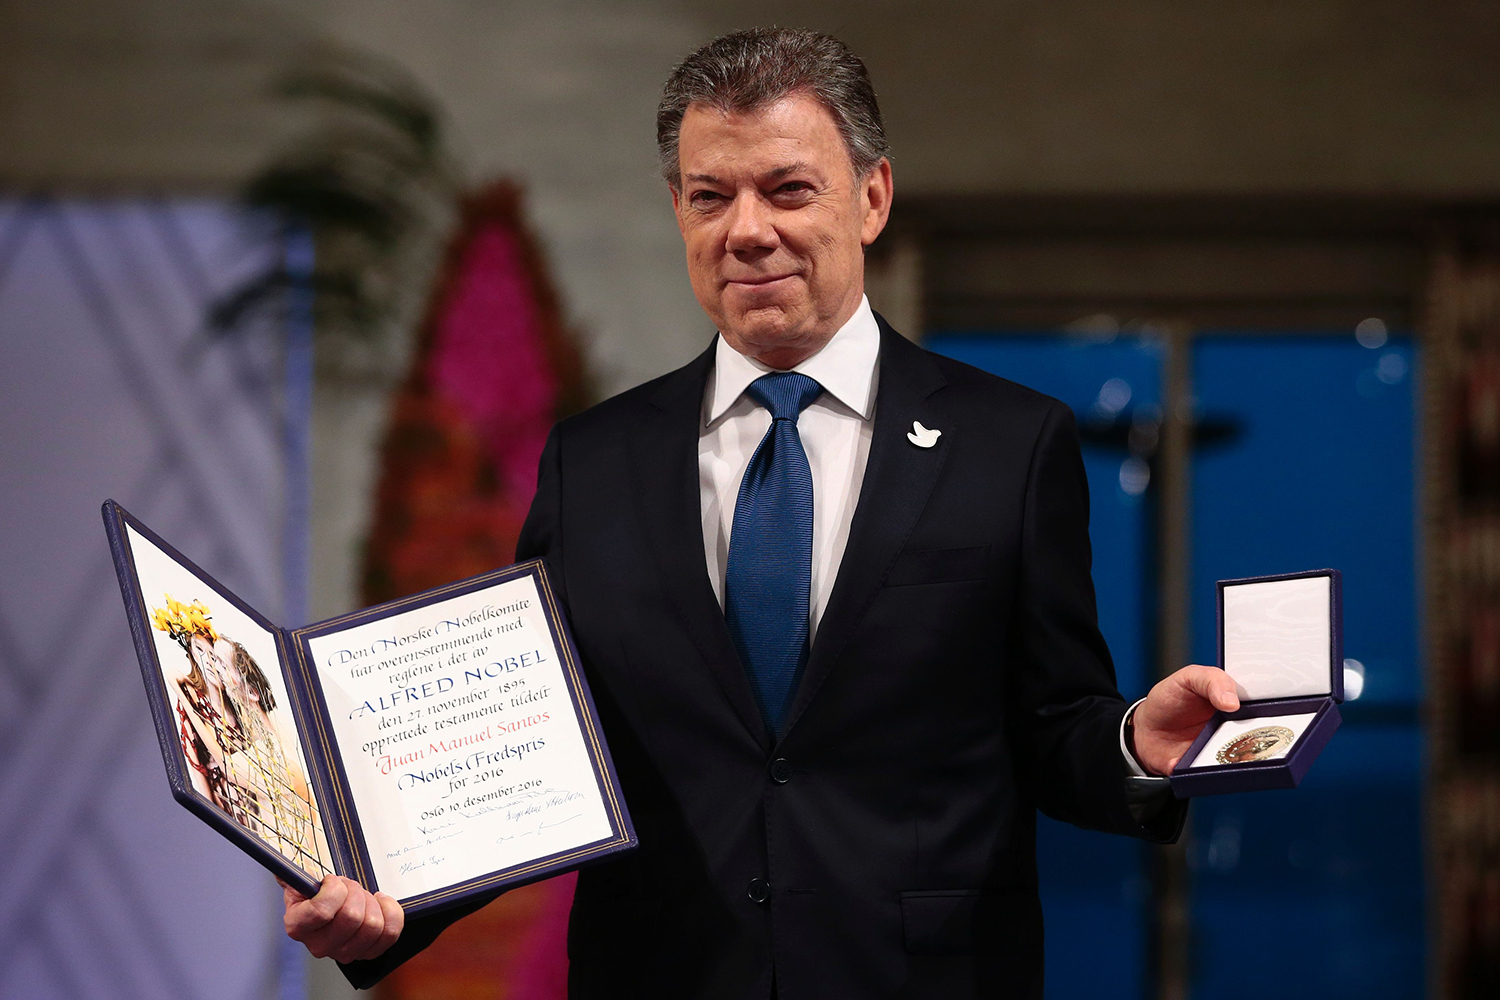 TOPSHOT - Nobel Peace Prize laureate Colombian President Juan Manuel Santos poses with the medal and diploma during the award ceremony of the Nobel Peace Prize on December 10, 2016 in Oslo, Norway. Colombian President Juan Manuel Santos was awarded this year's Nobel Peace Prize for his efforts to bring Colombia's more than 50-year-long civil war to an end. / AFP PHOTO / NTB SCANPIX / Haakon Mosvold Larsen / Norway OUT / TT / kod 444